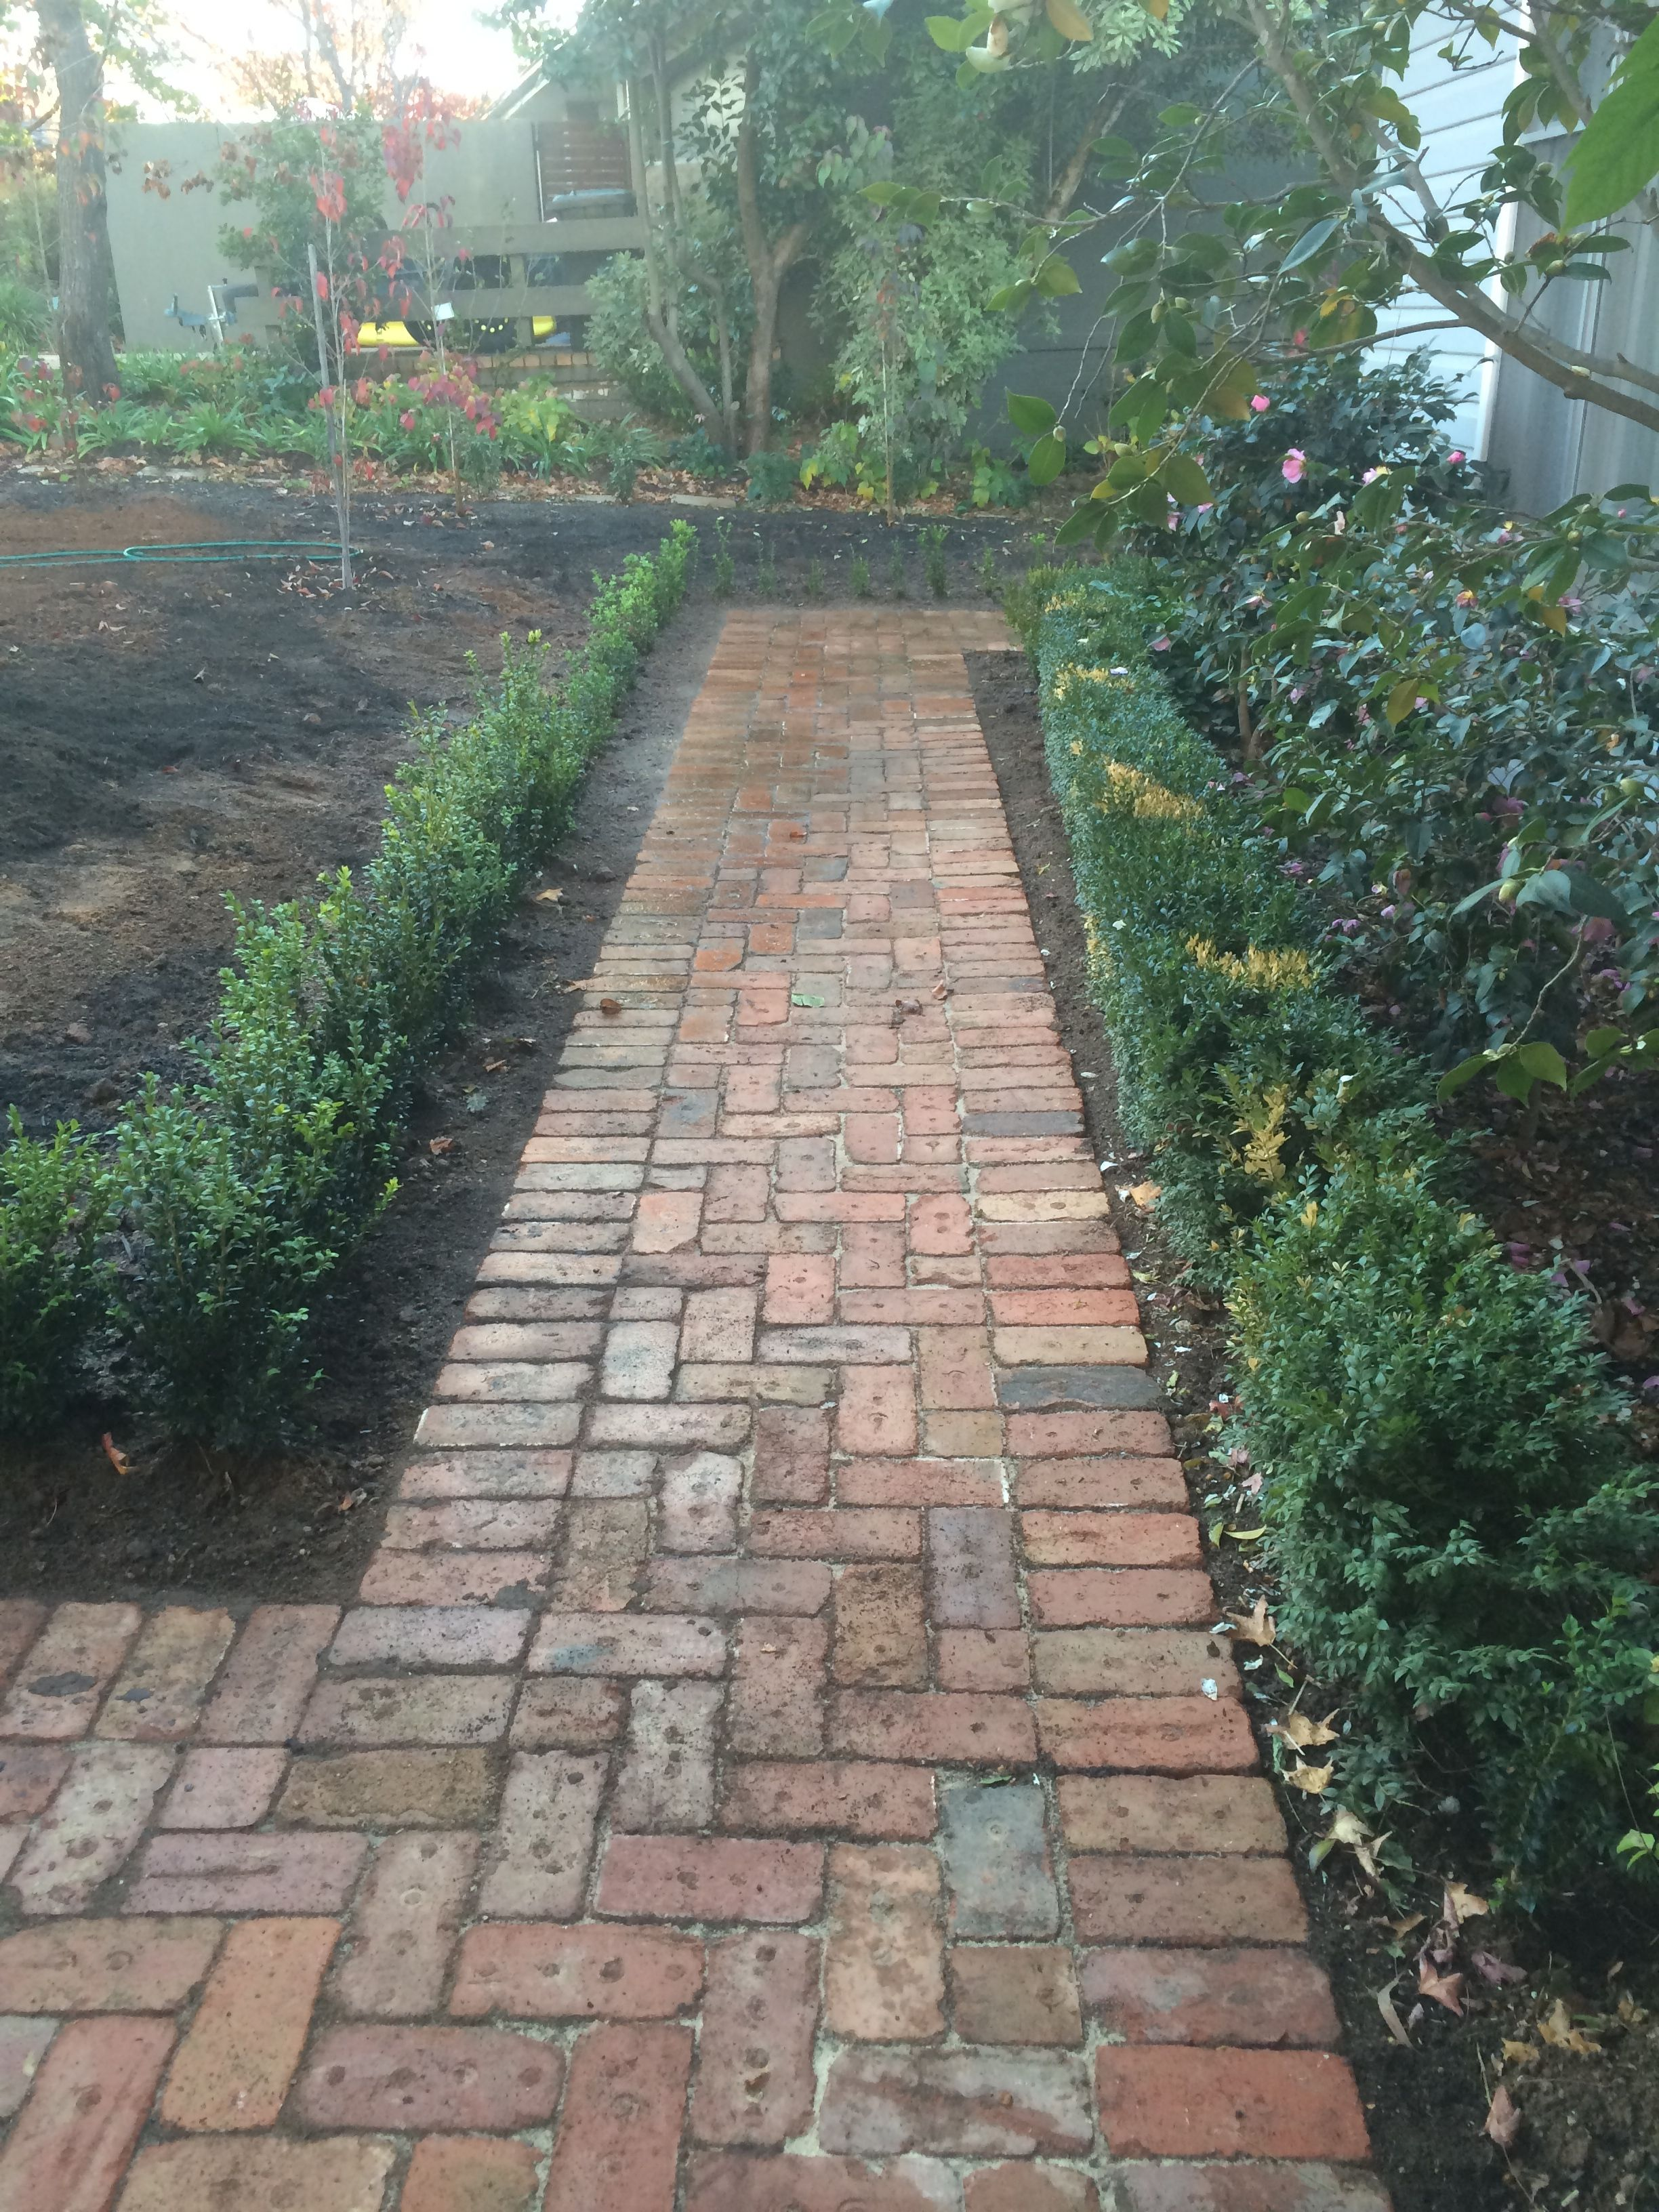 Paving Using Old Canberra Red Bricks With English Box Hedging Plants